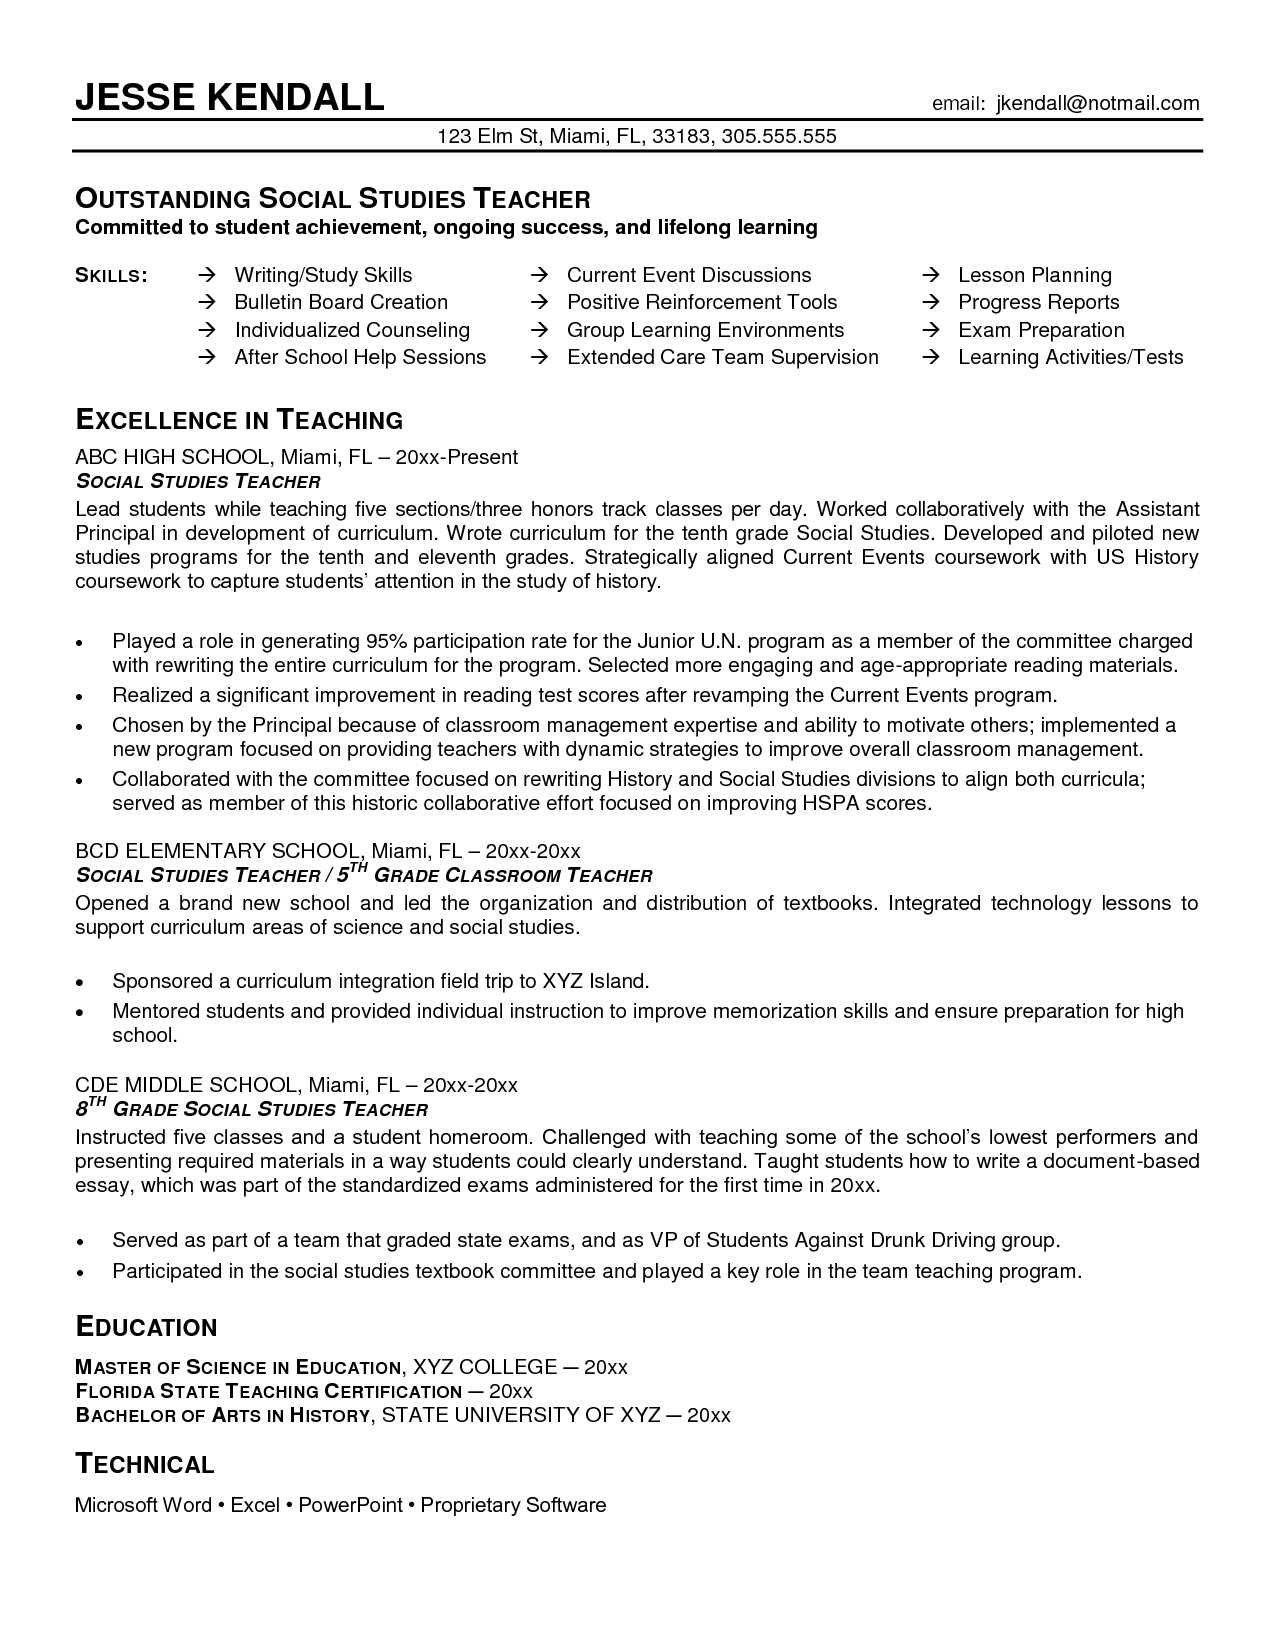 high school history teacher resumes - Gecce.tackletarts.co